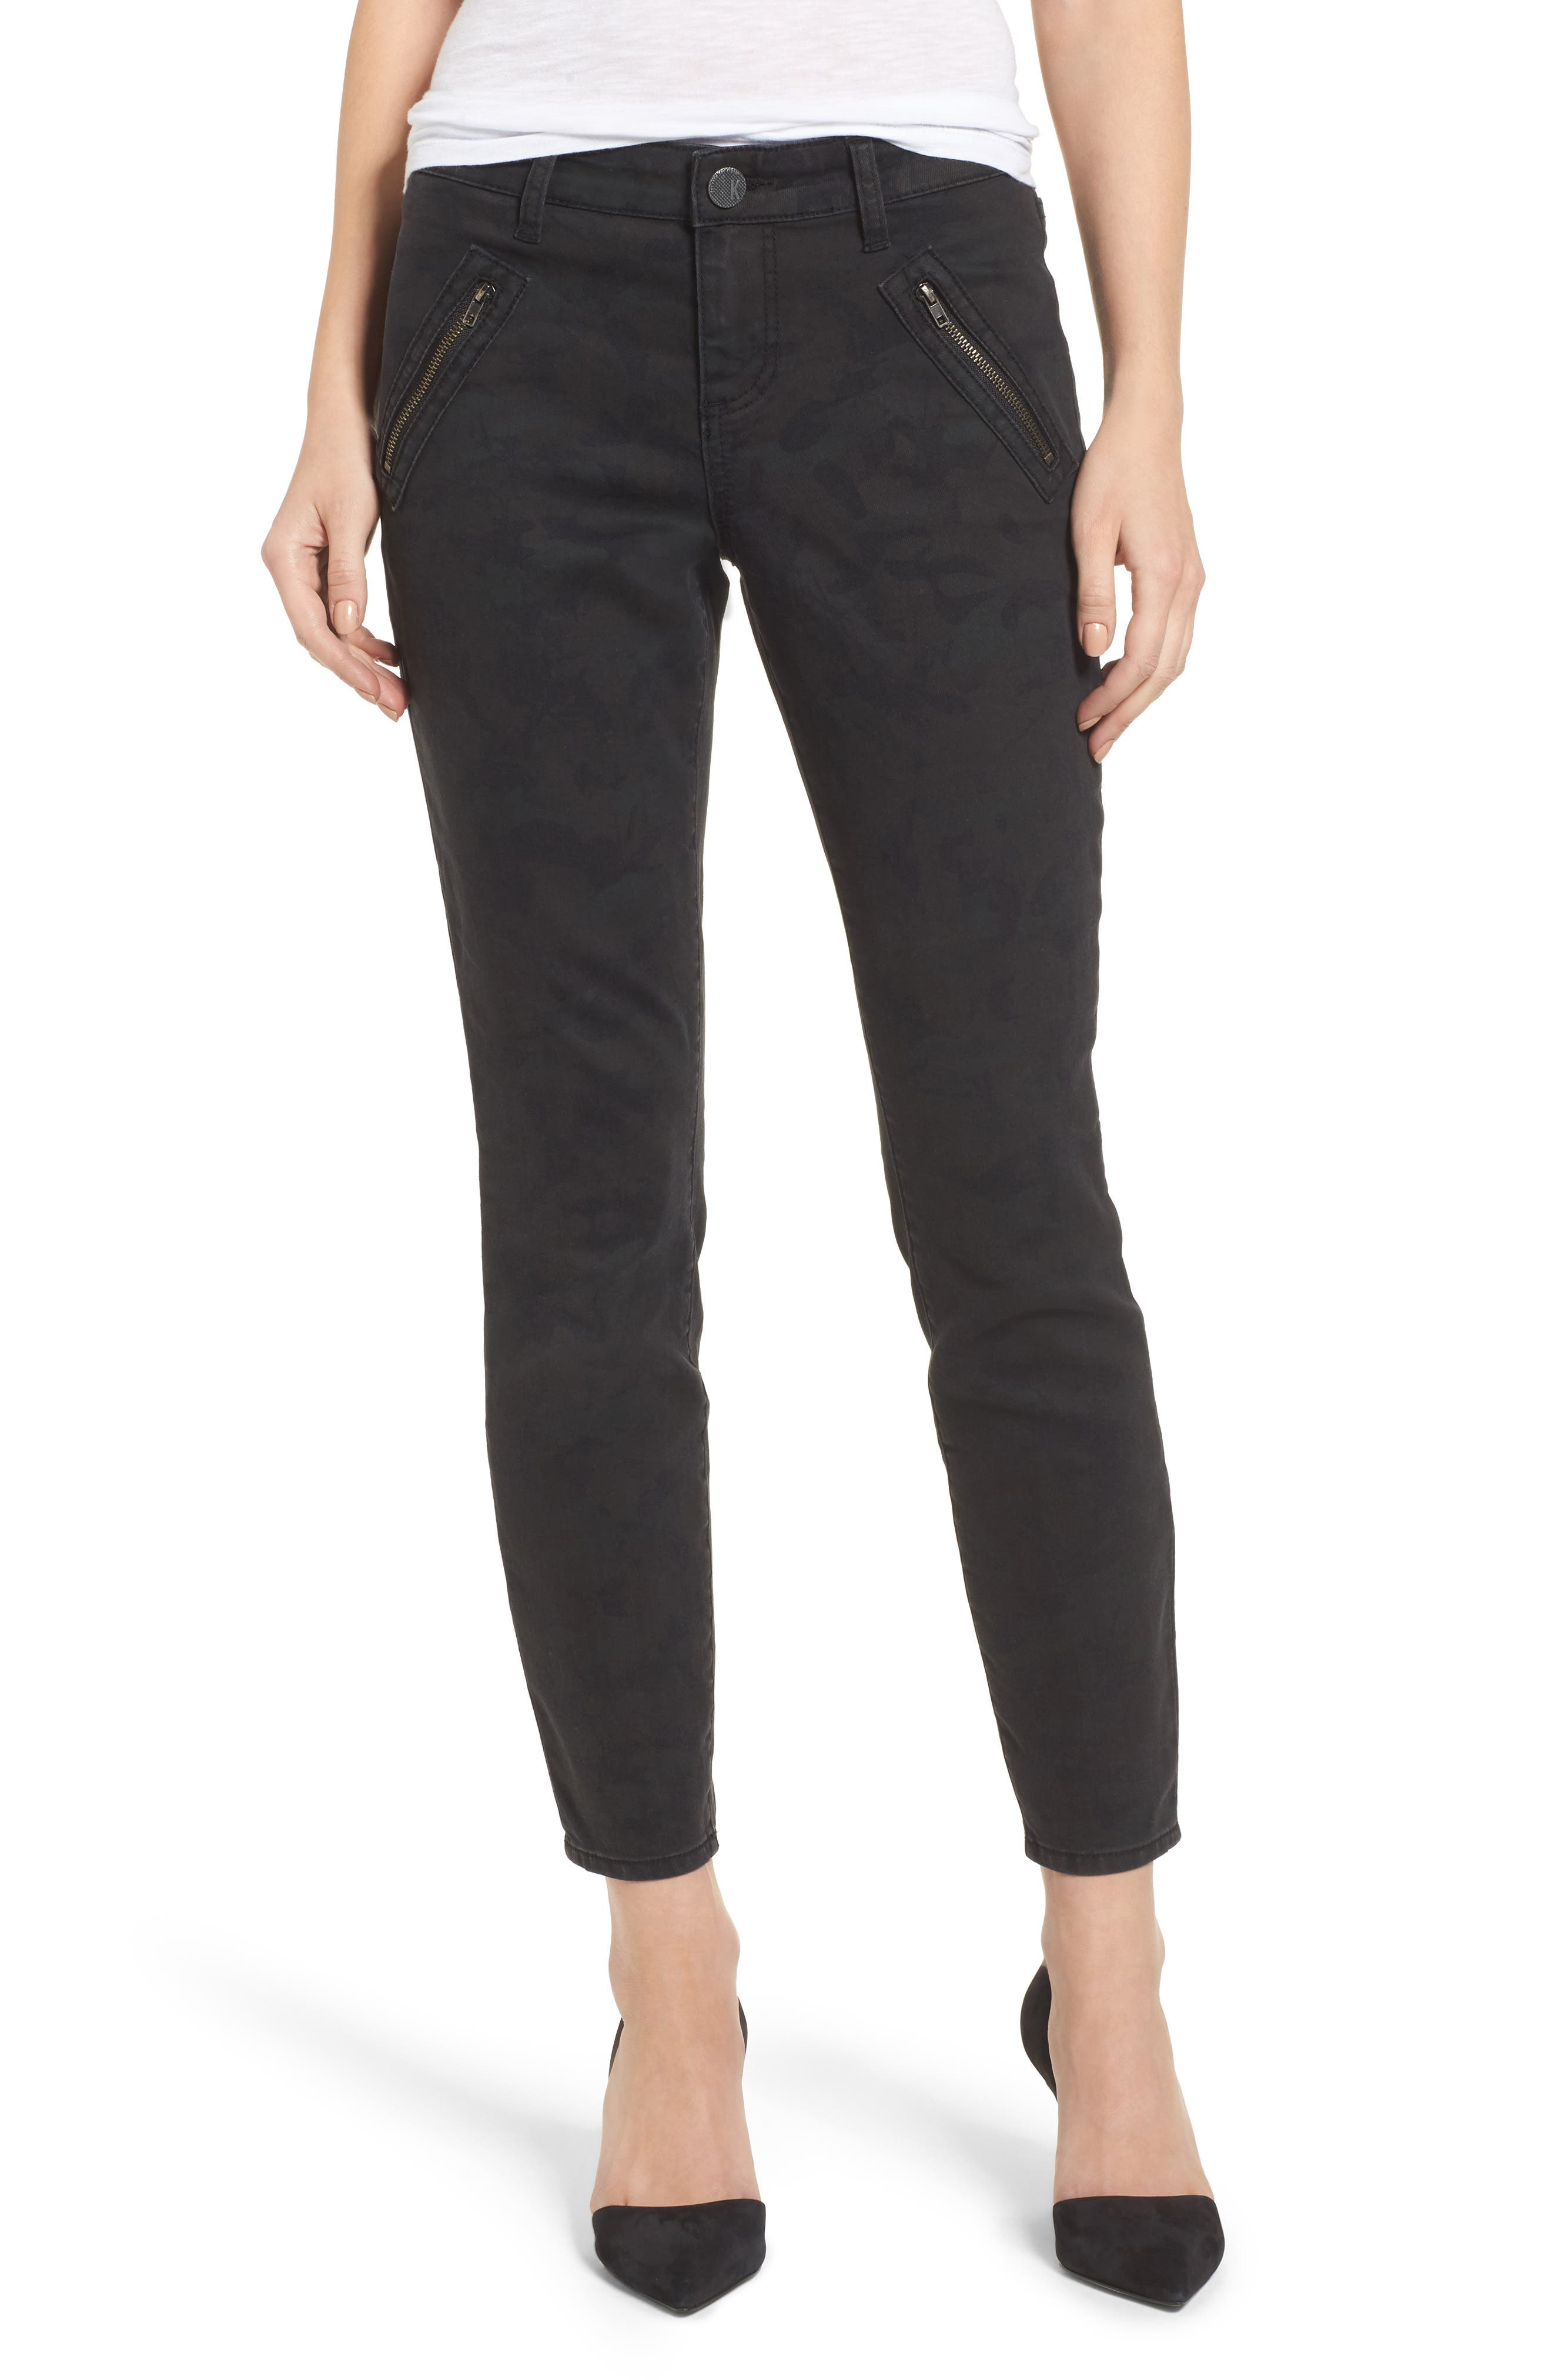 Alternate Image 1 Selected - KUT from the Kloth Connie Skinny Ankle Jeans